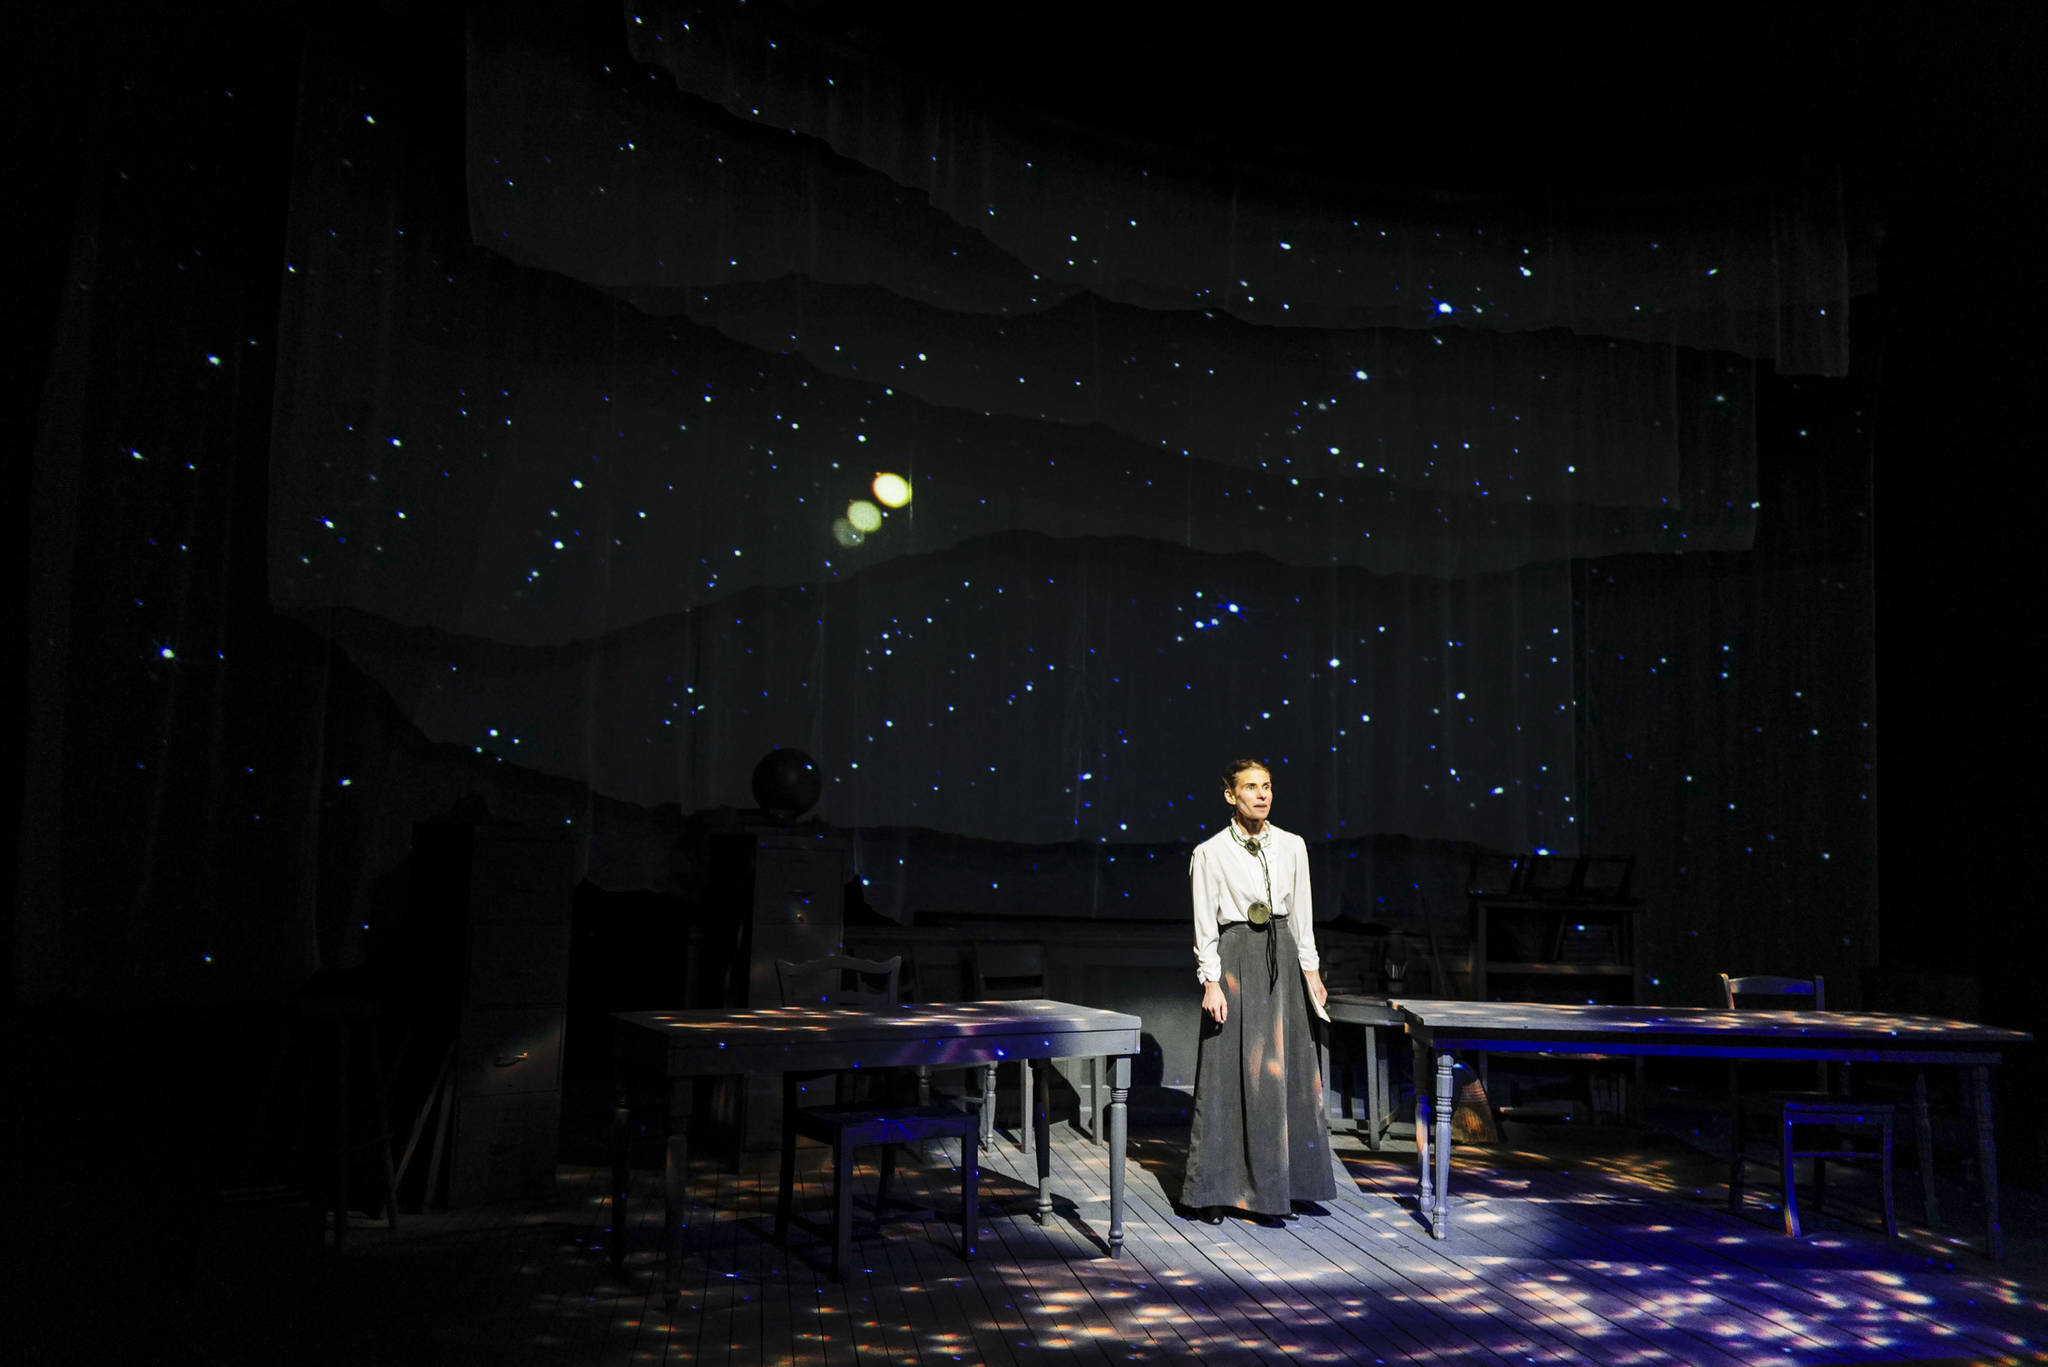 Photos by Michael Penn | Capital City Weekly                                Shelley Virginia portrays Henrietta Swan Leavitt, whose discoveries helped create the standard used to measure the distance of far-off galaxies.